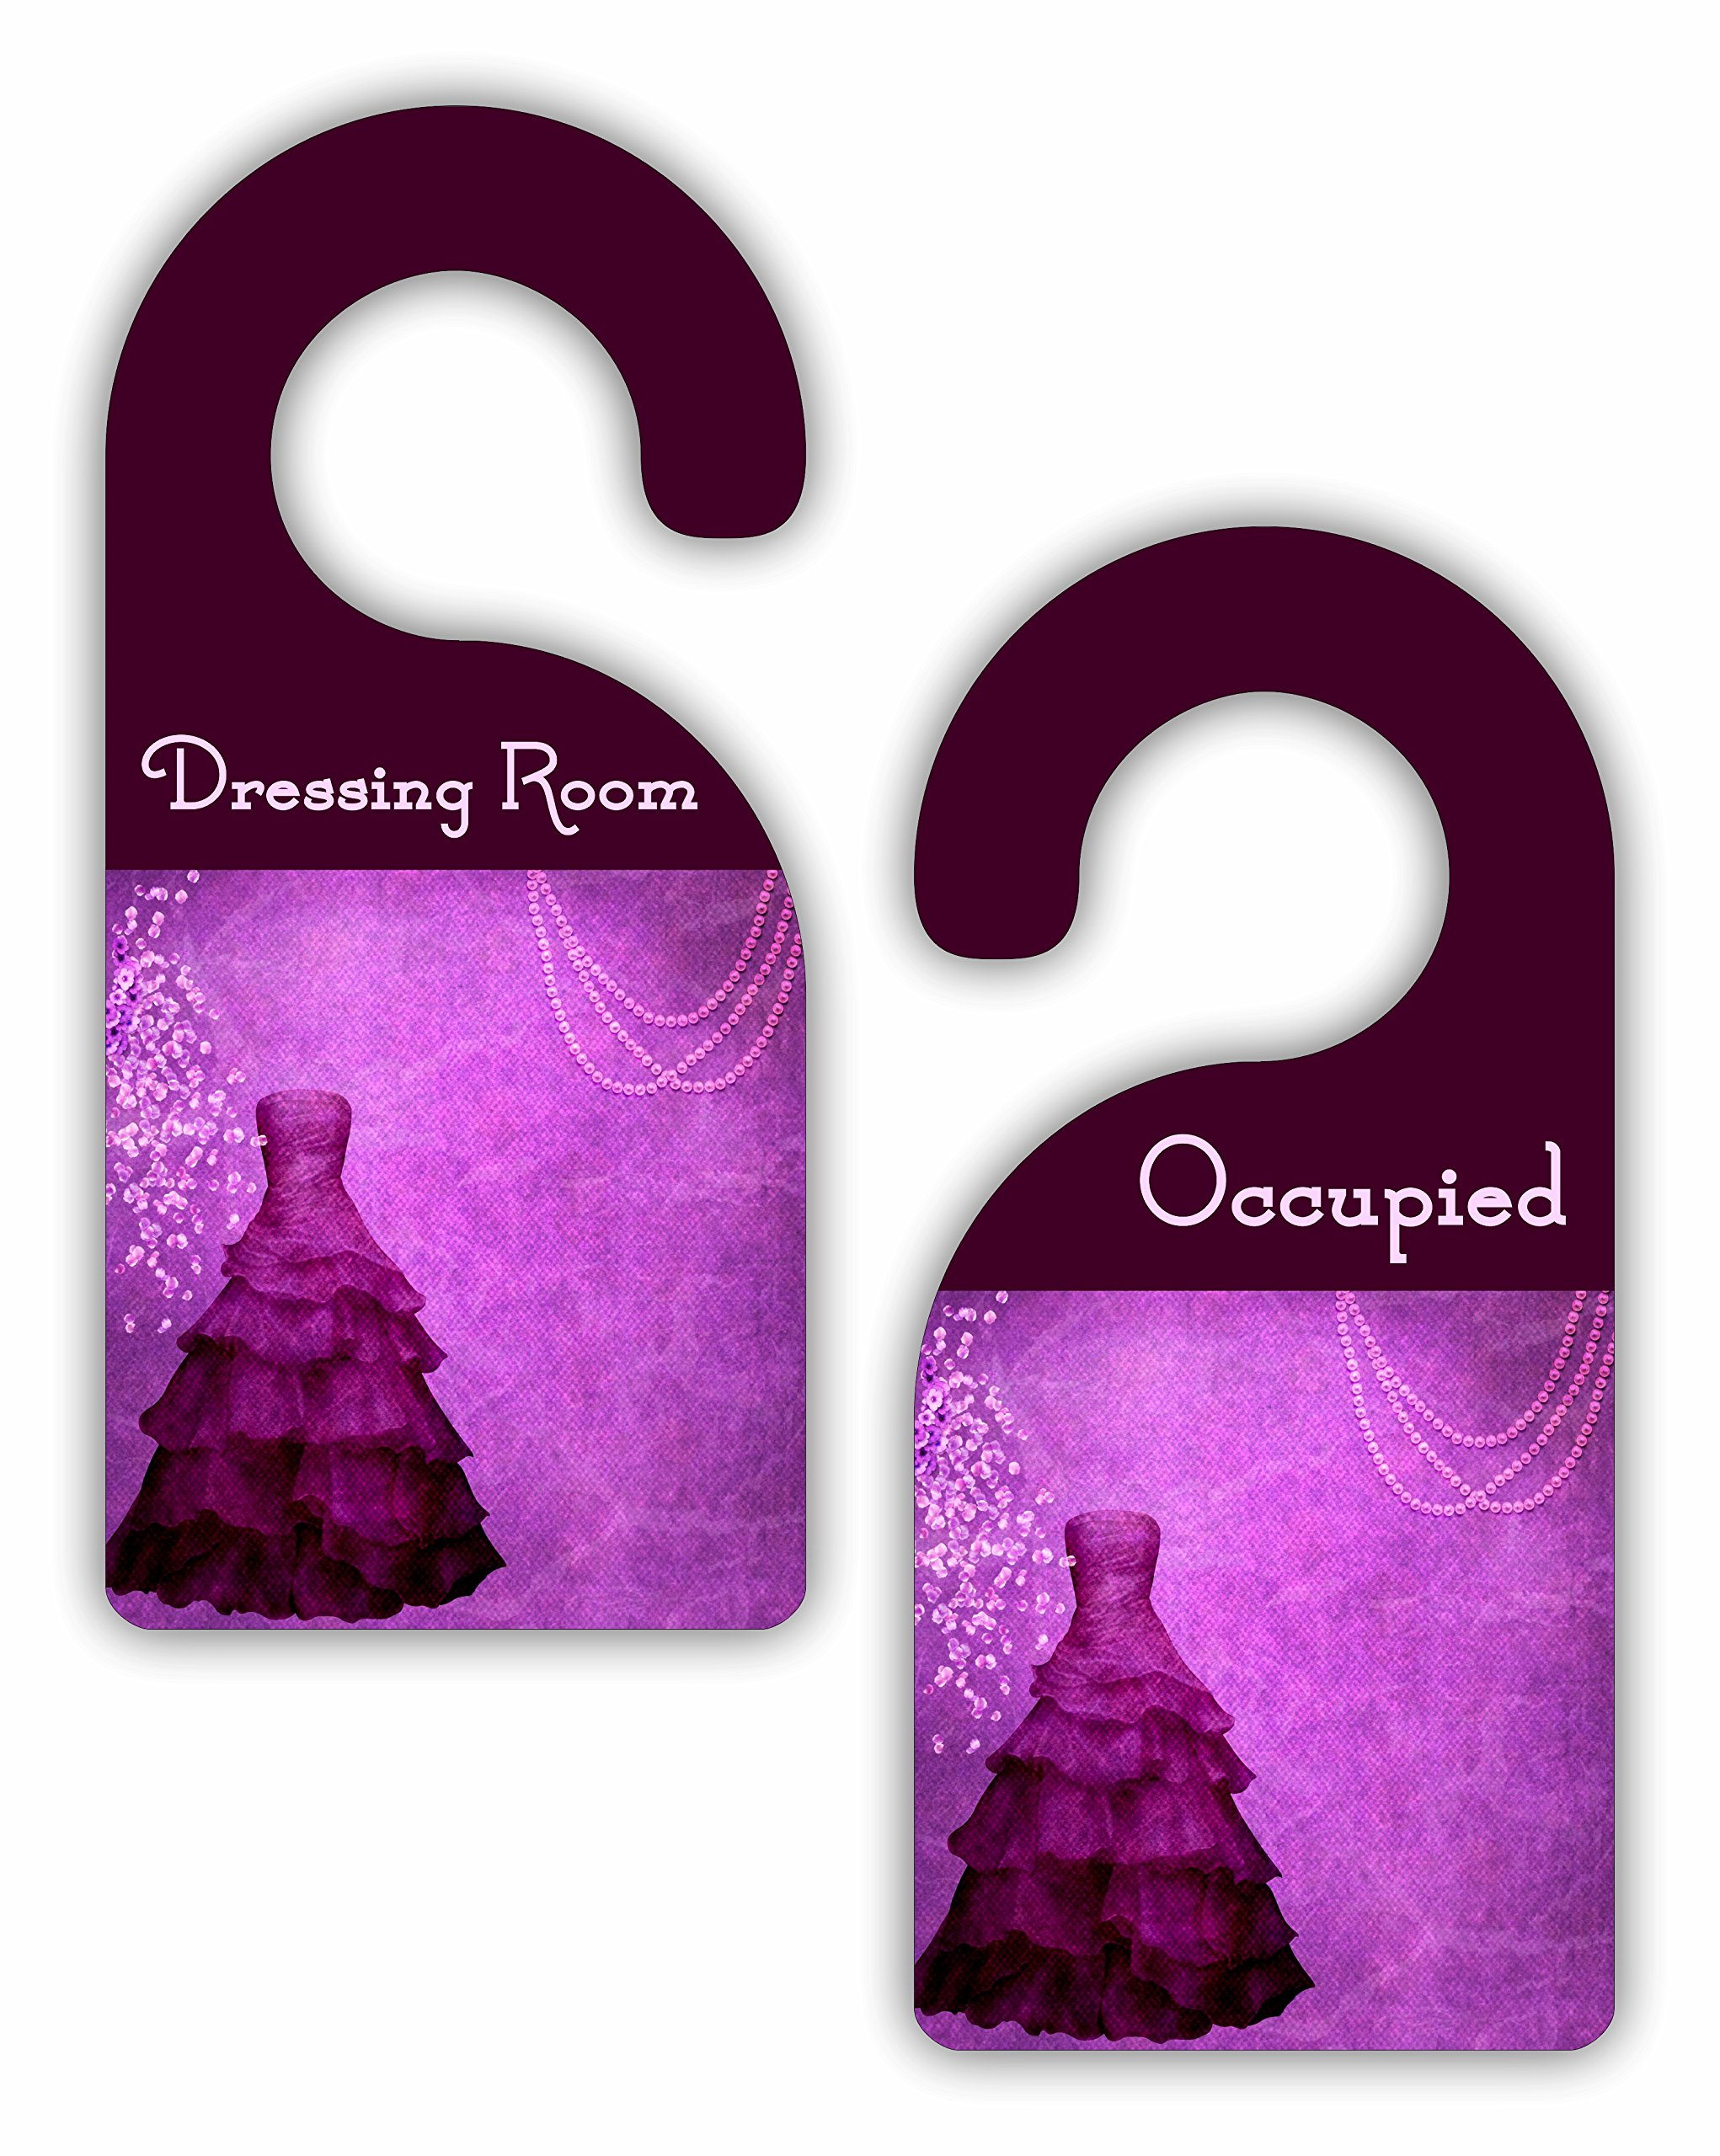 Dressing Room - Occupied - Boutique / Closet / Store Room Door Sign Hanger - Double Sided - Hard Plastic - Glossy Finish